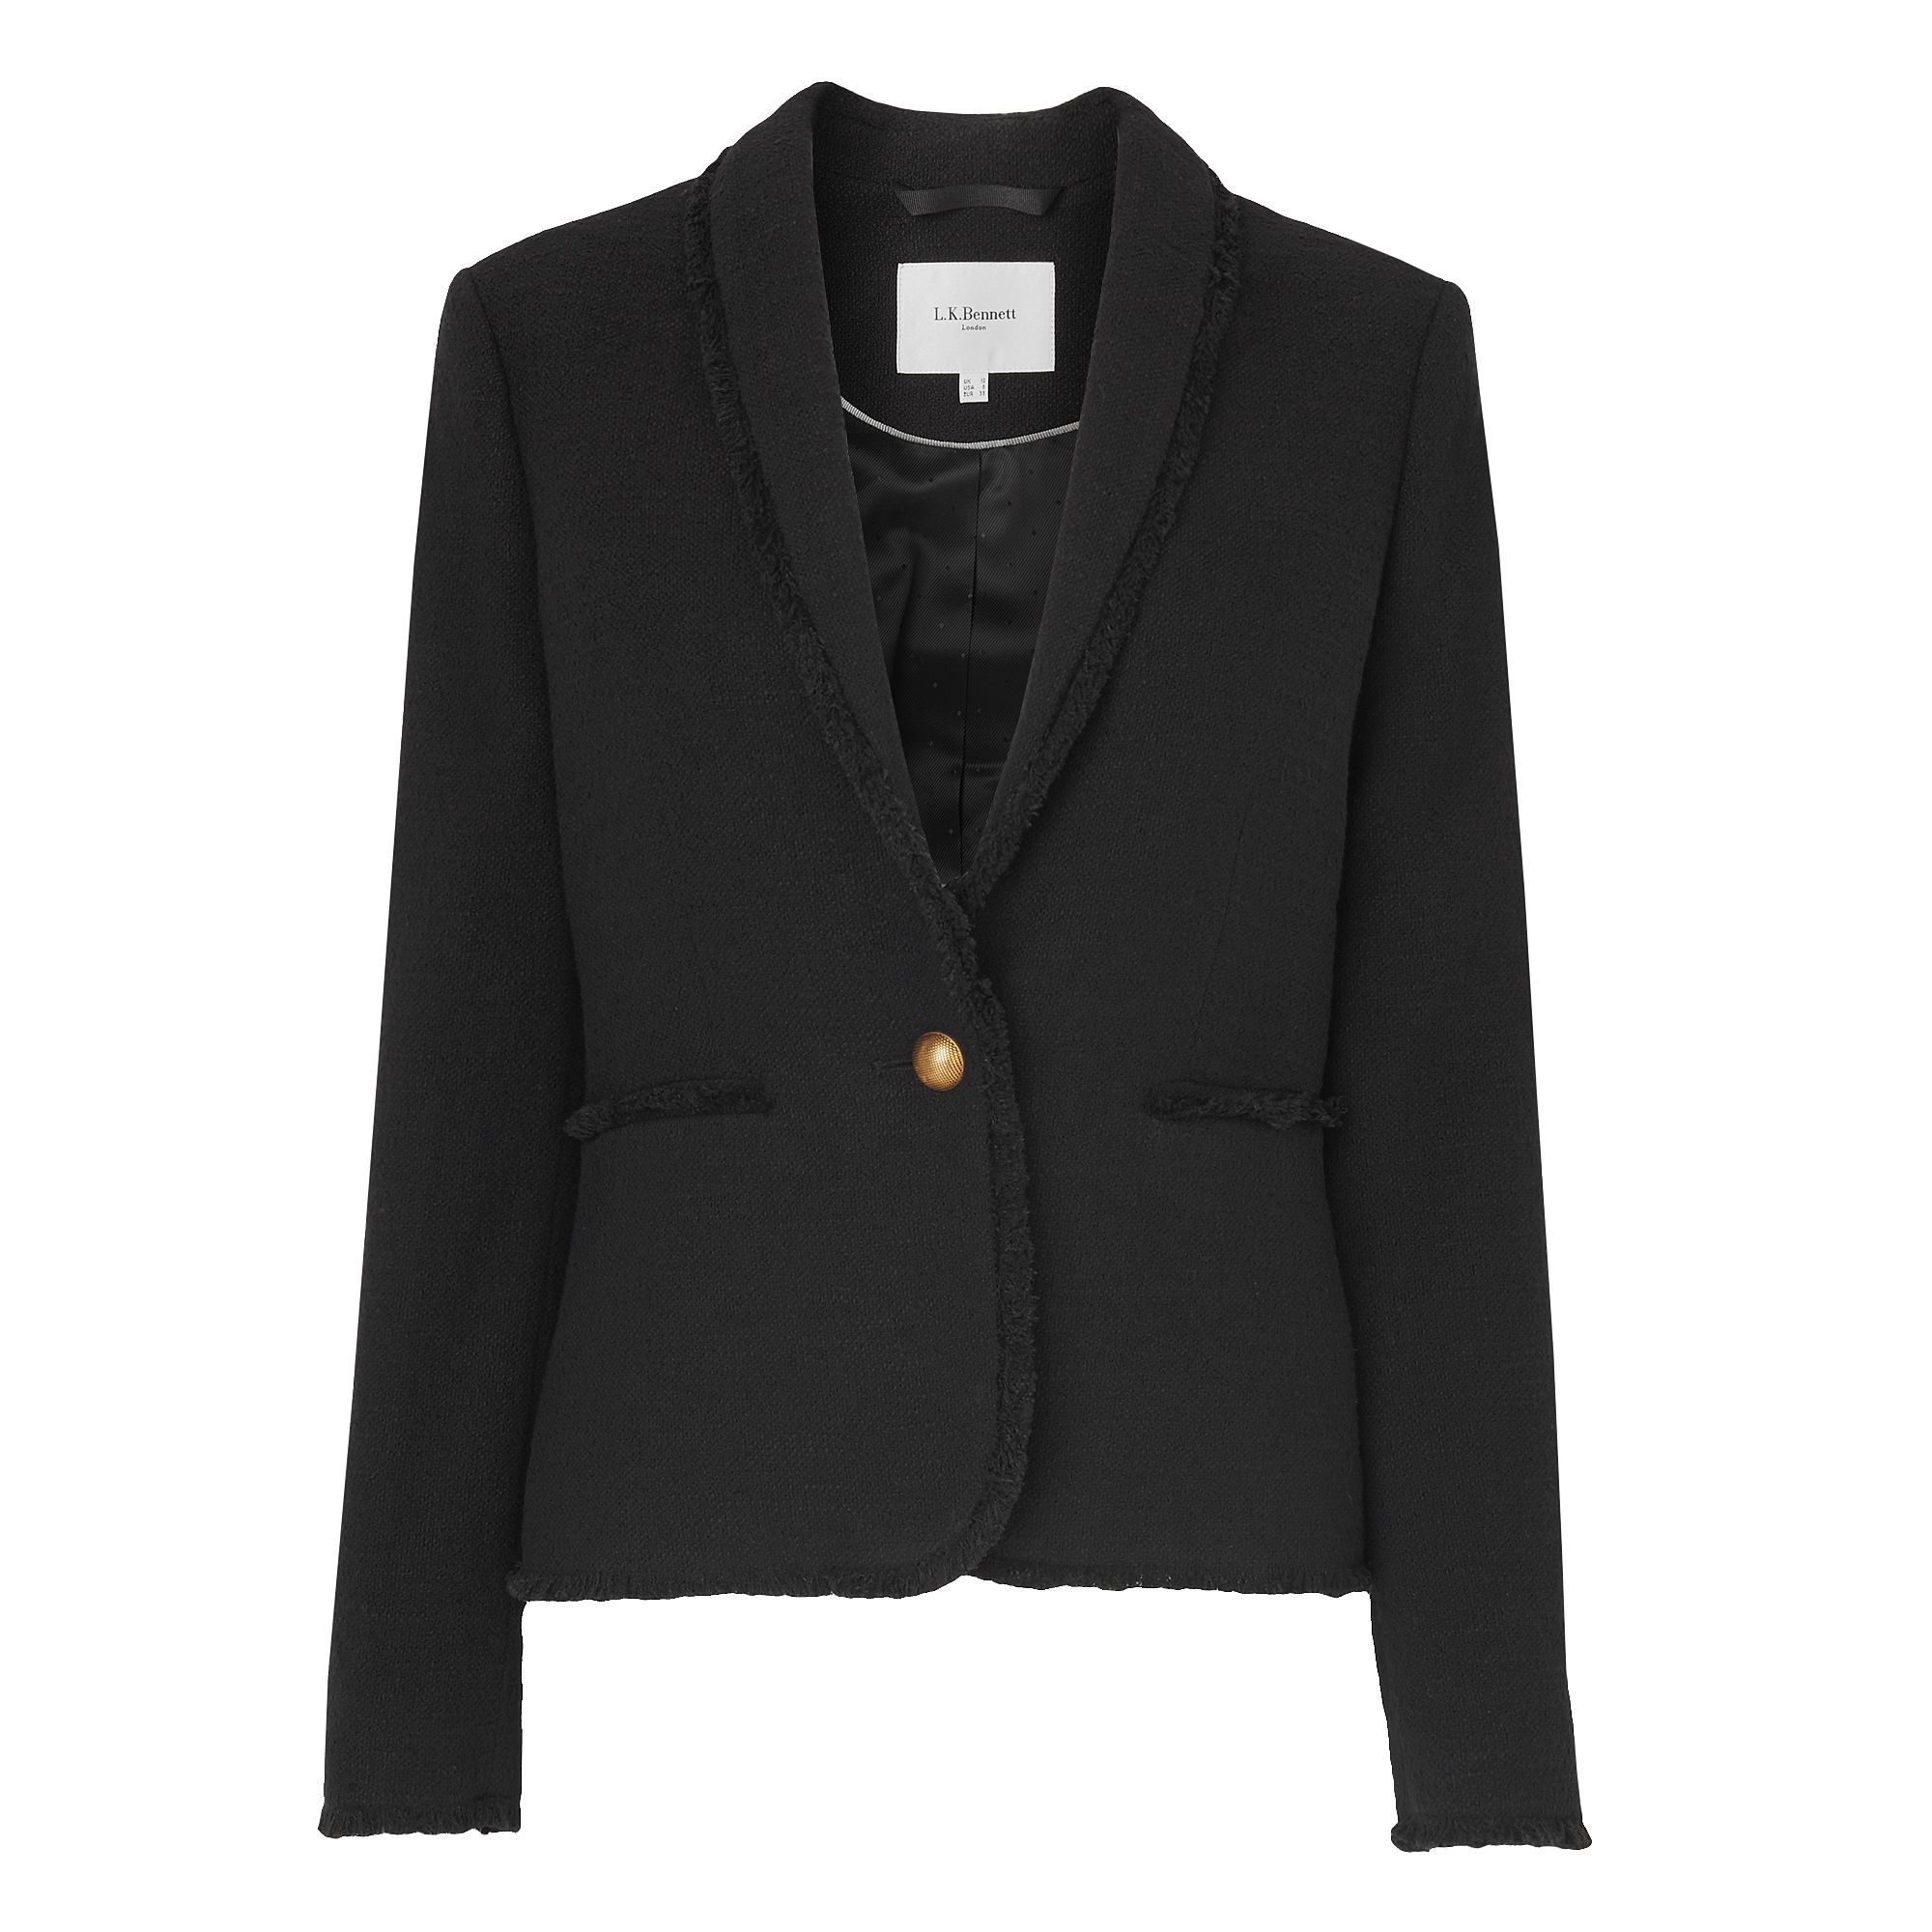 L.K. Bennett Shippa Black Tweed Jacket, Black